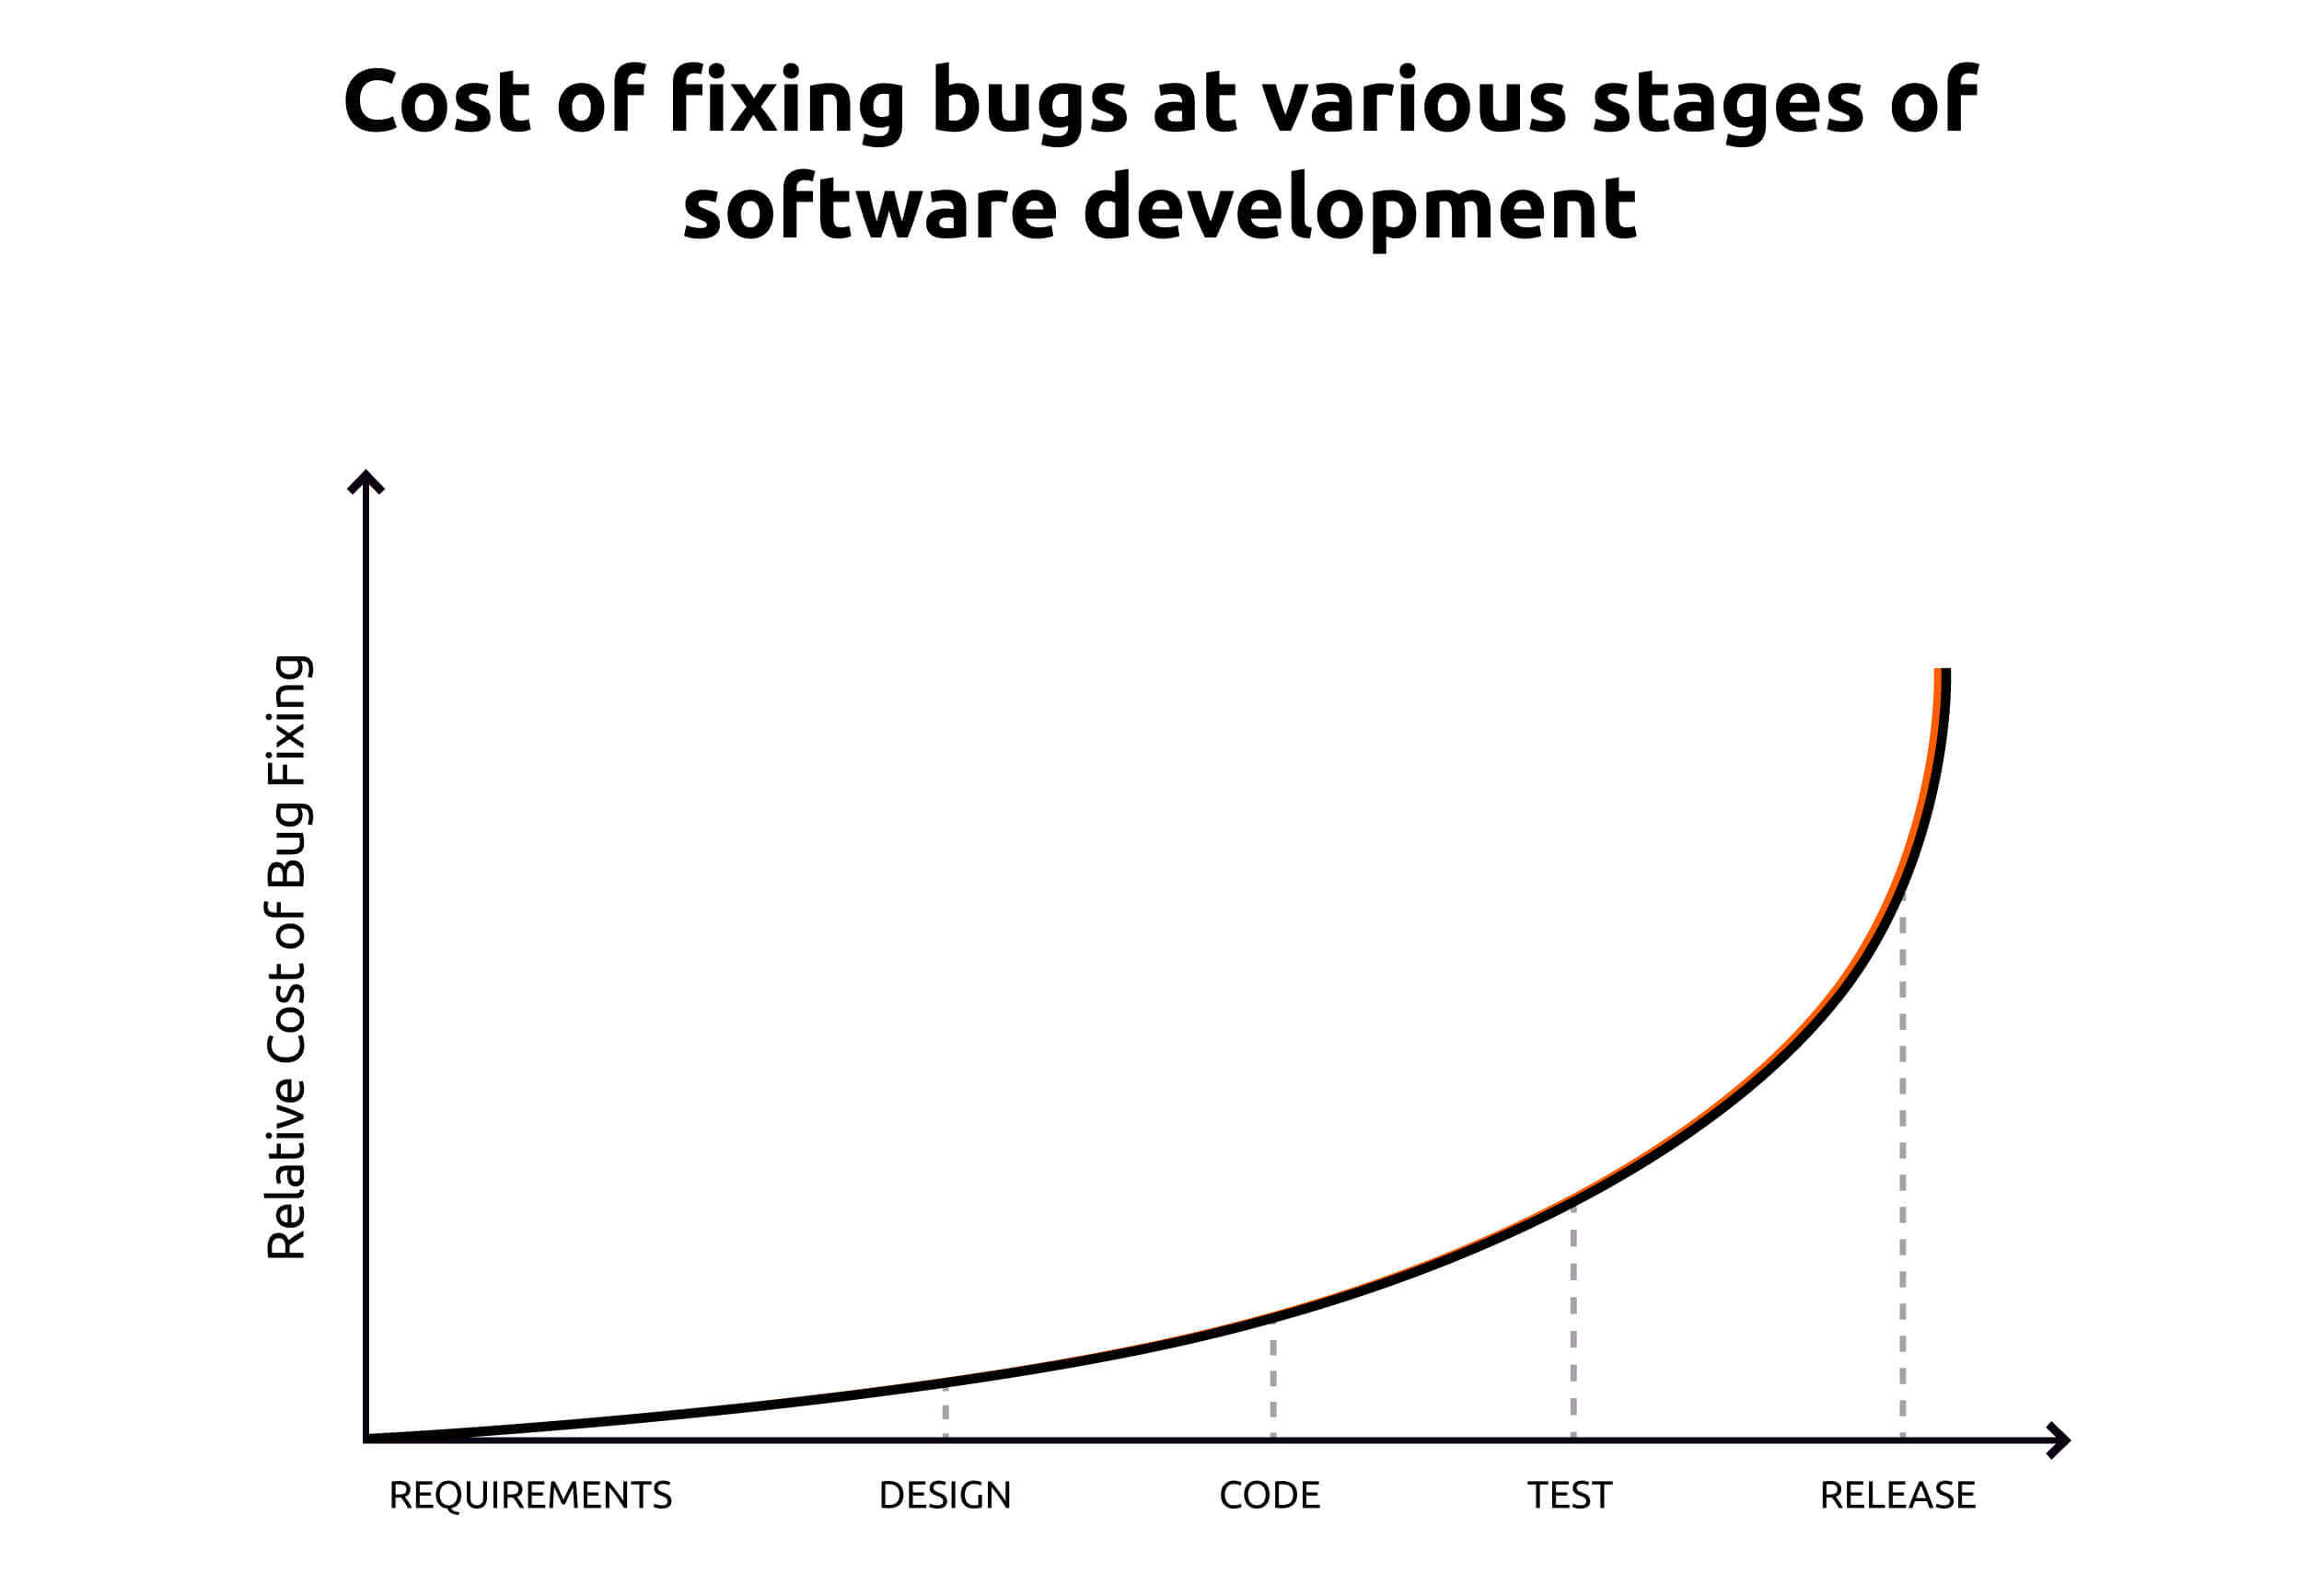 Cost of fixing bugs at various stages of software development